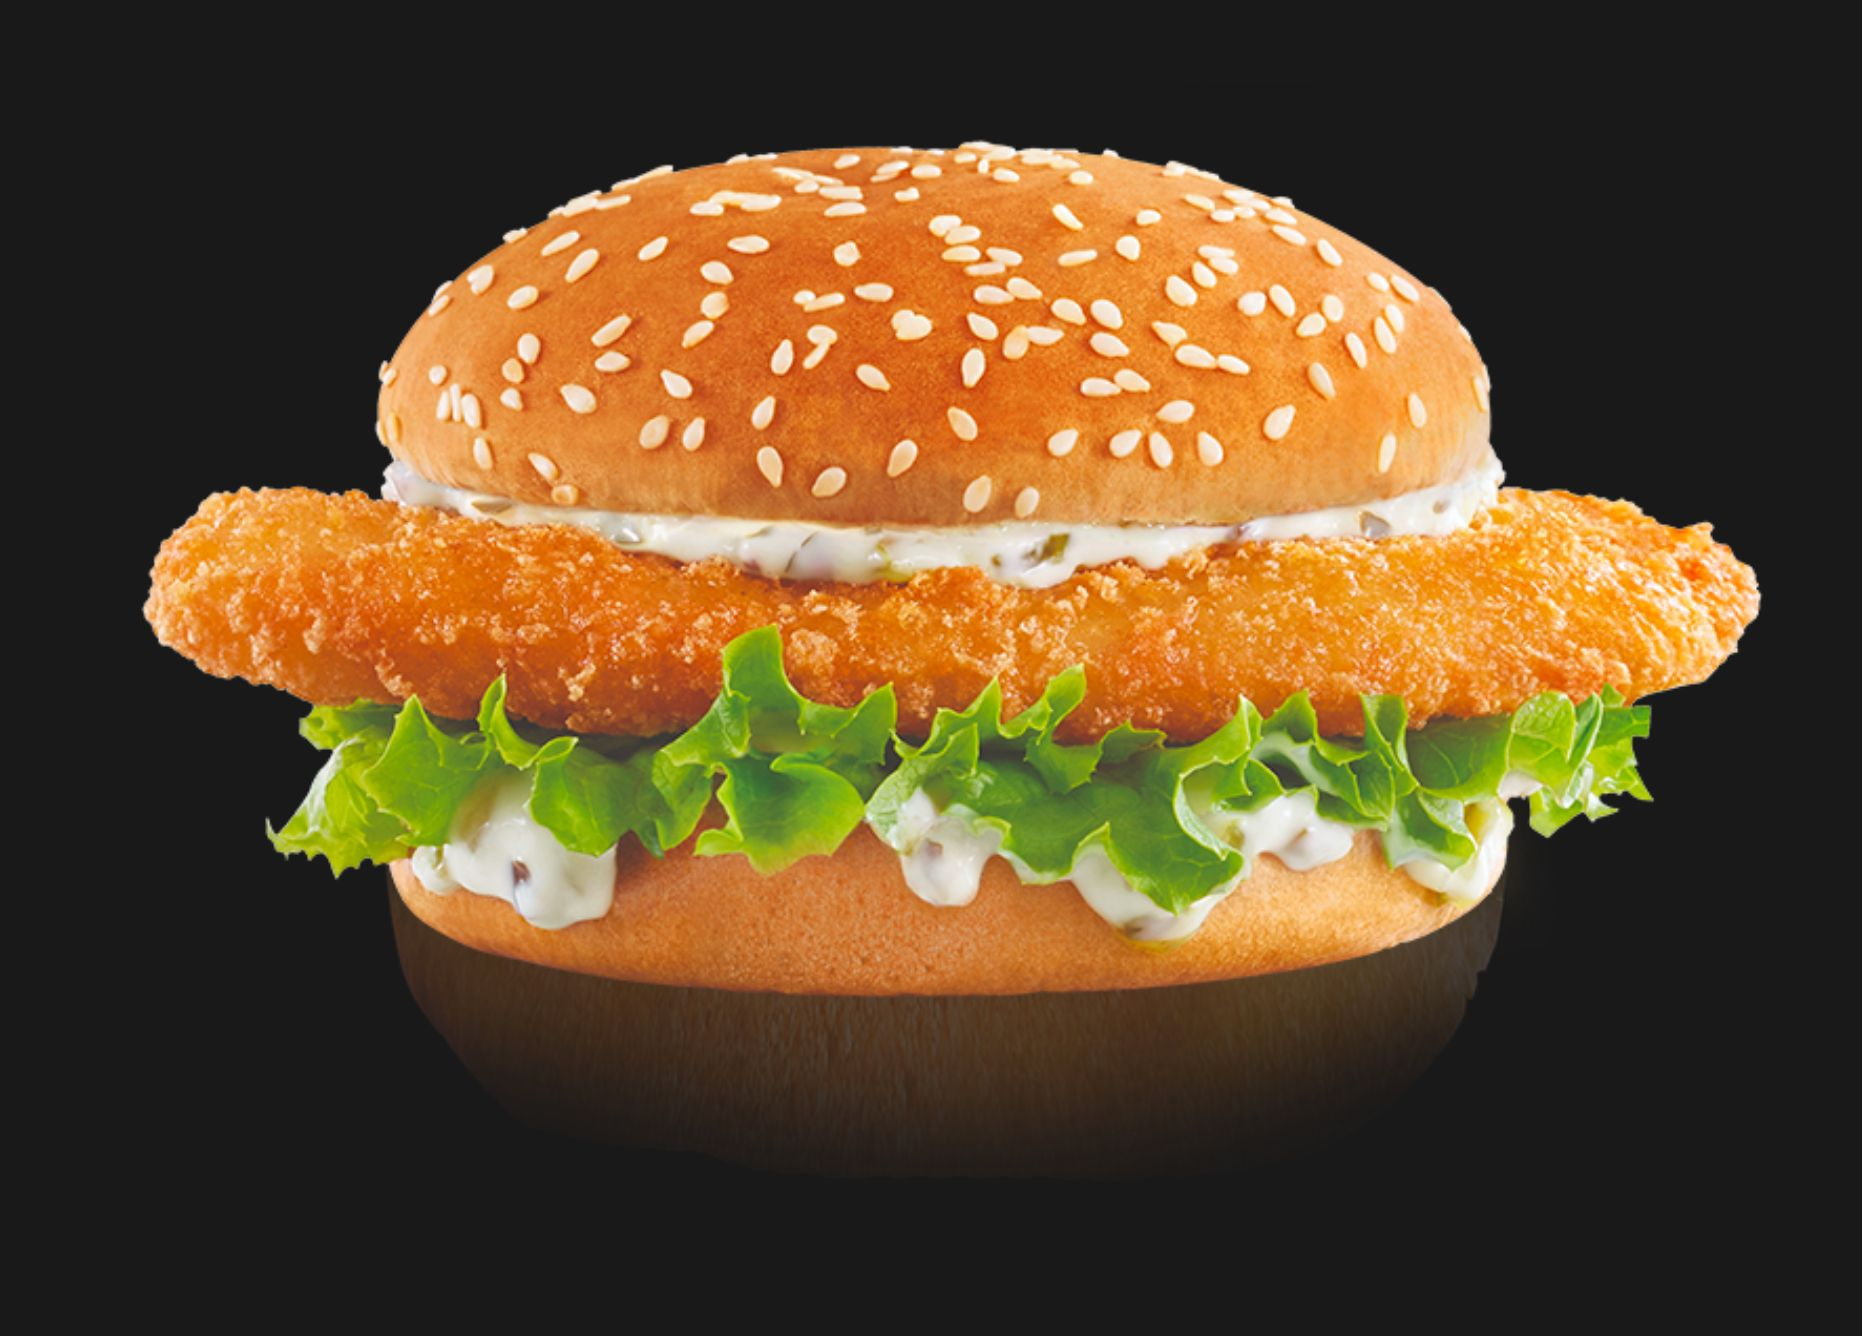 The Beer-Battered Fish Sandwich is Back By Popular Demand at Carl's Jr. for a Short Time